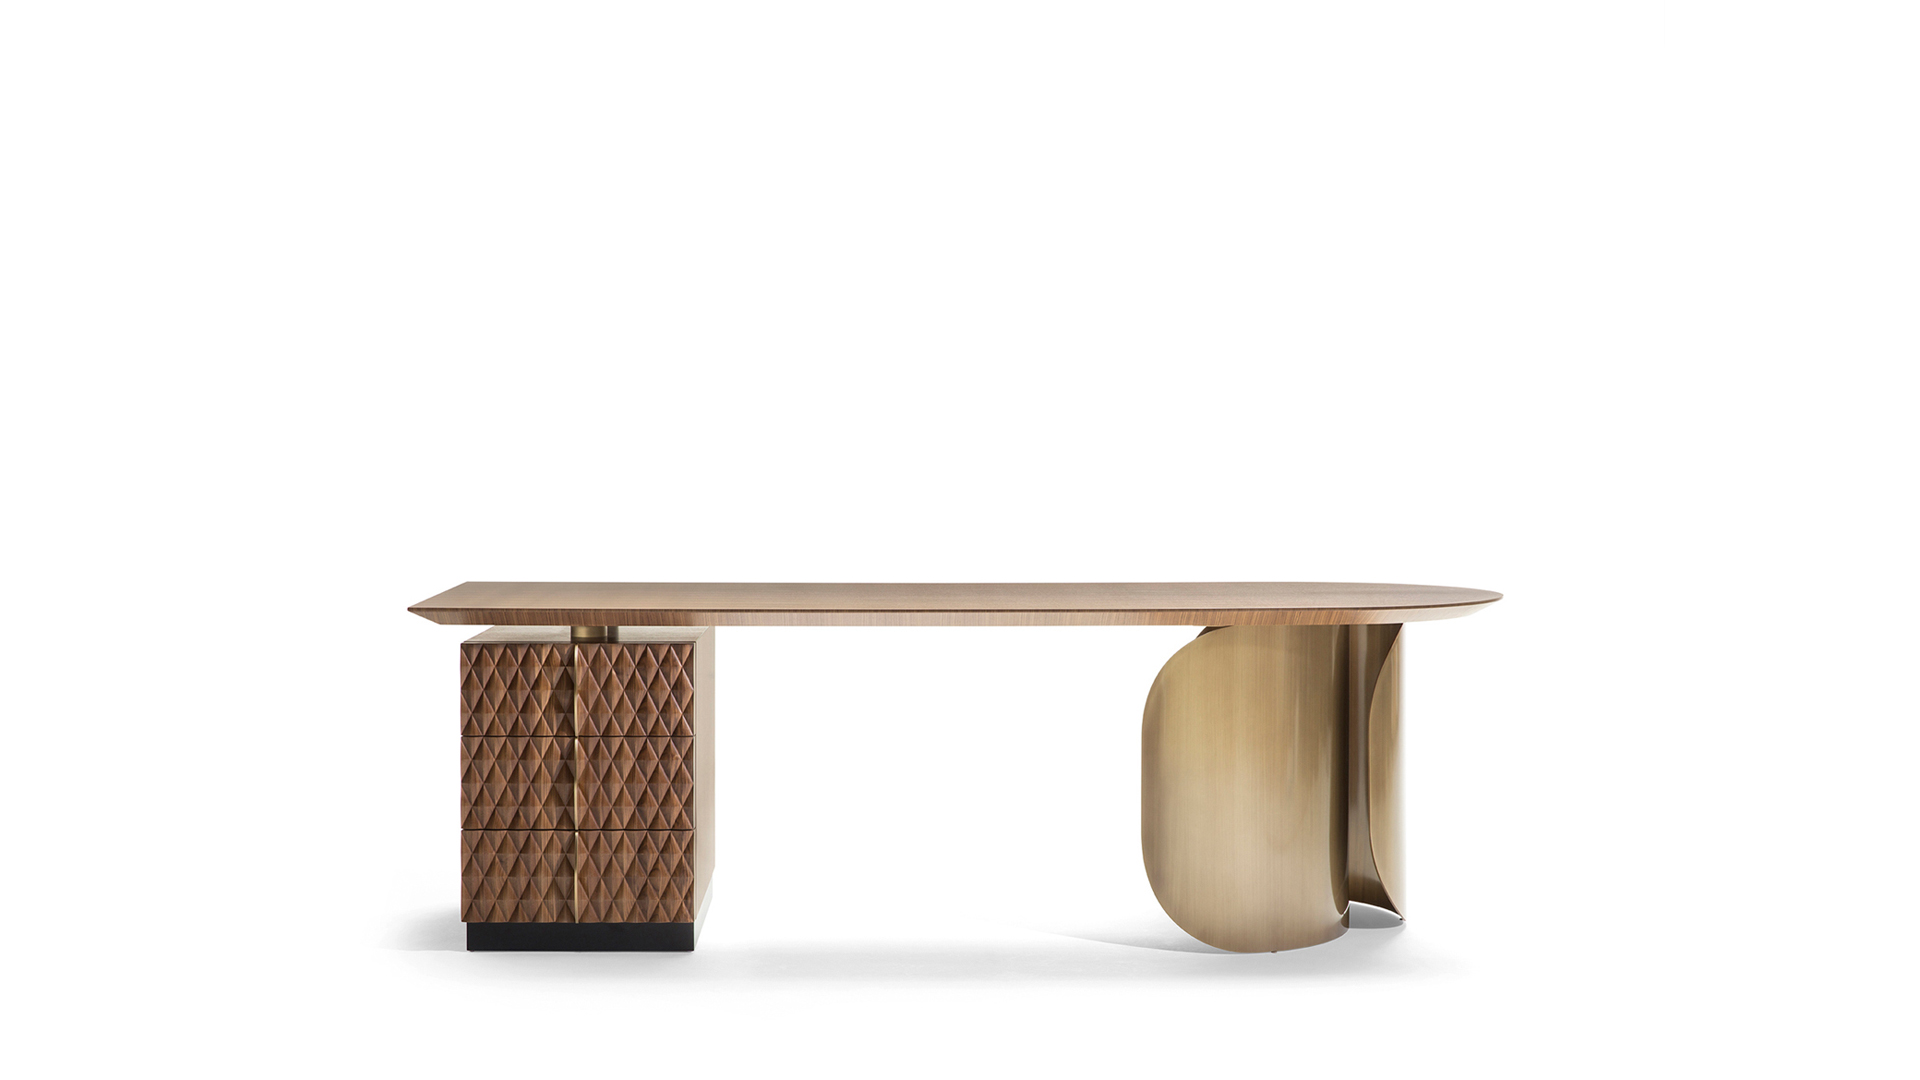 Desk with wood and metal frame